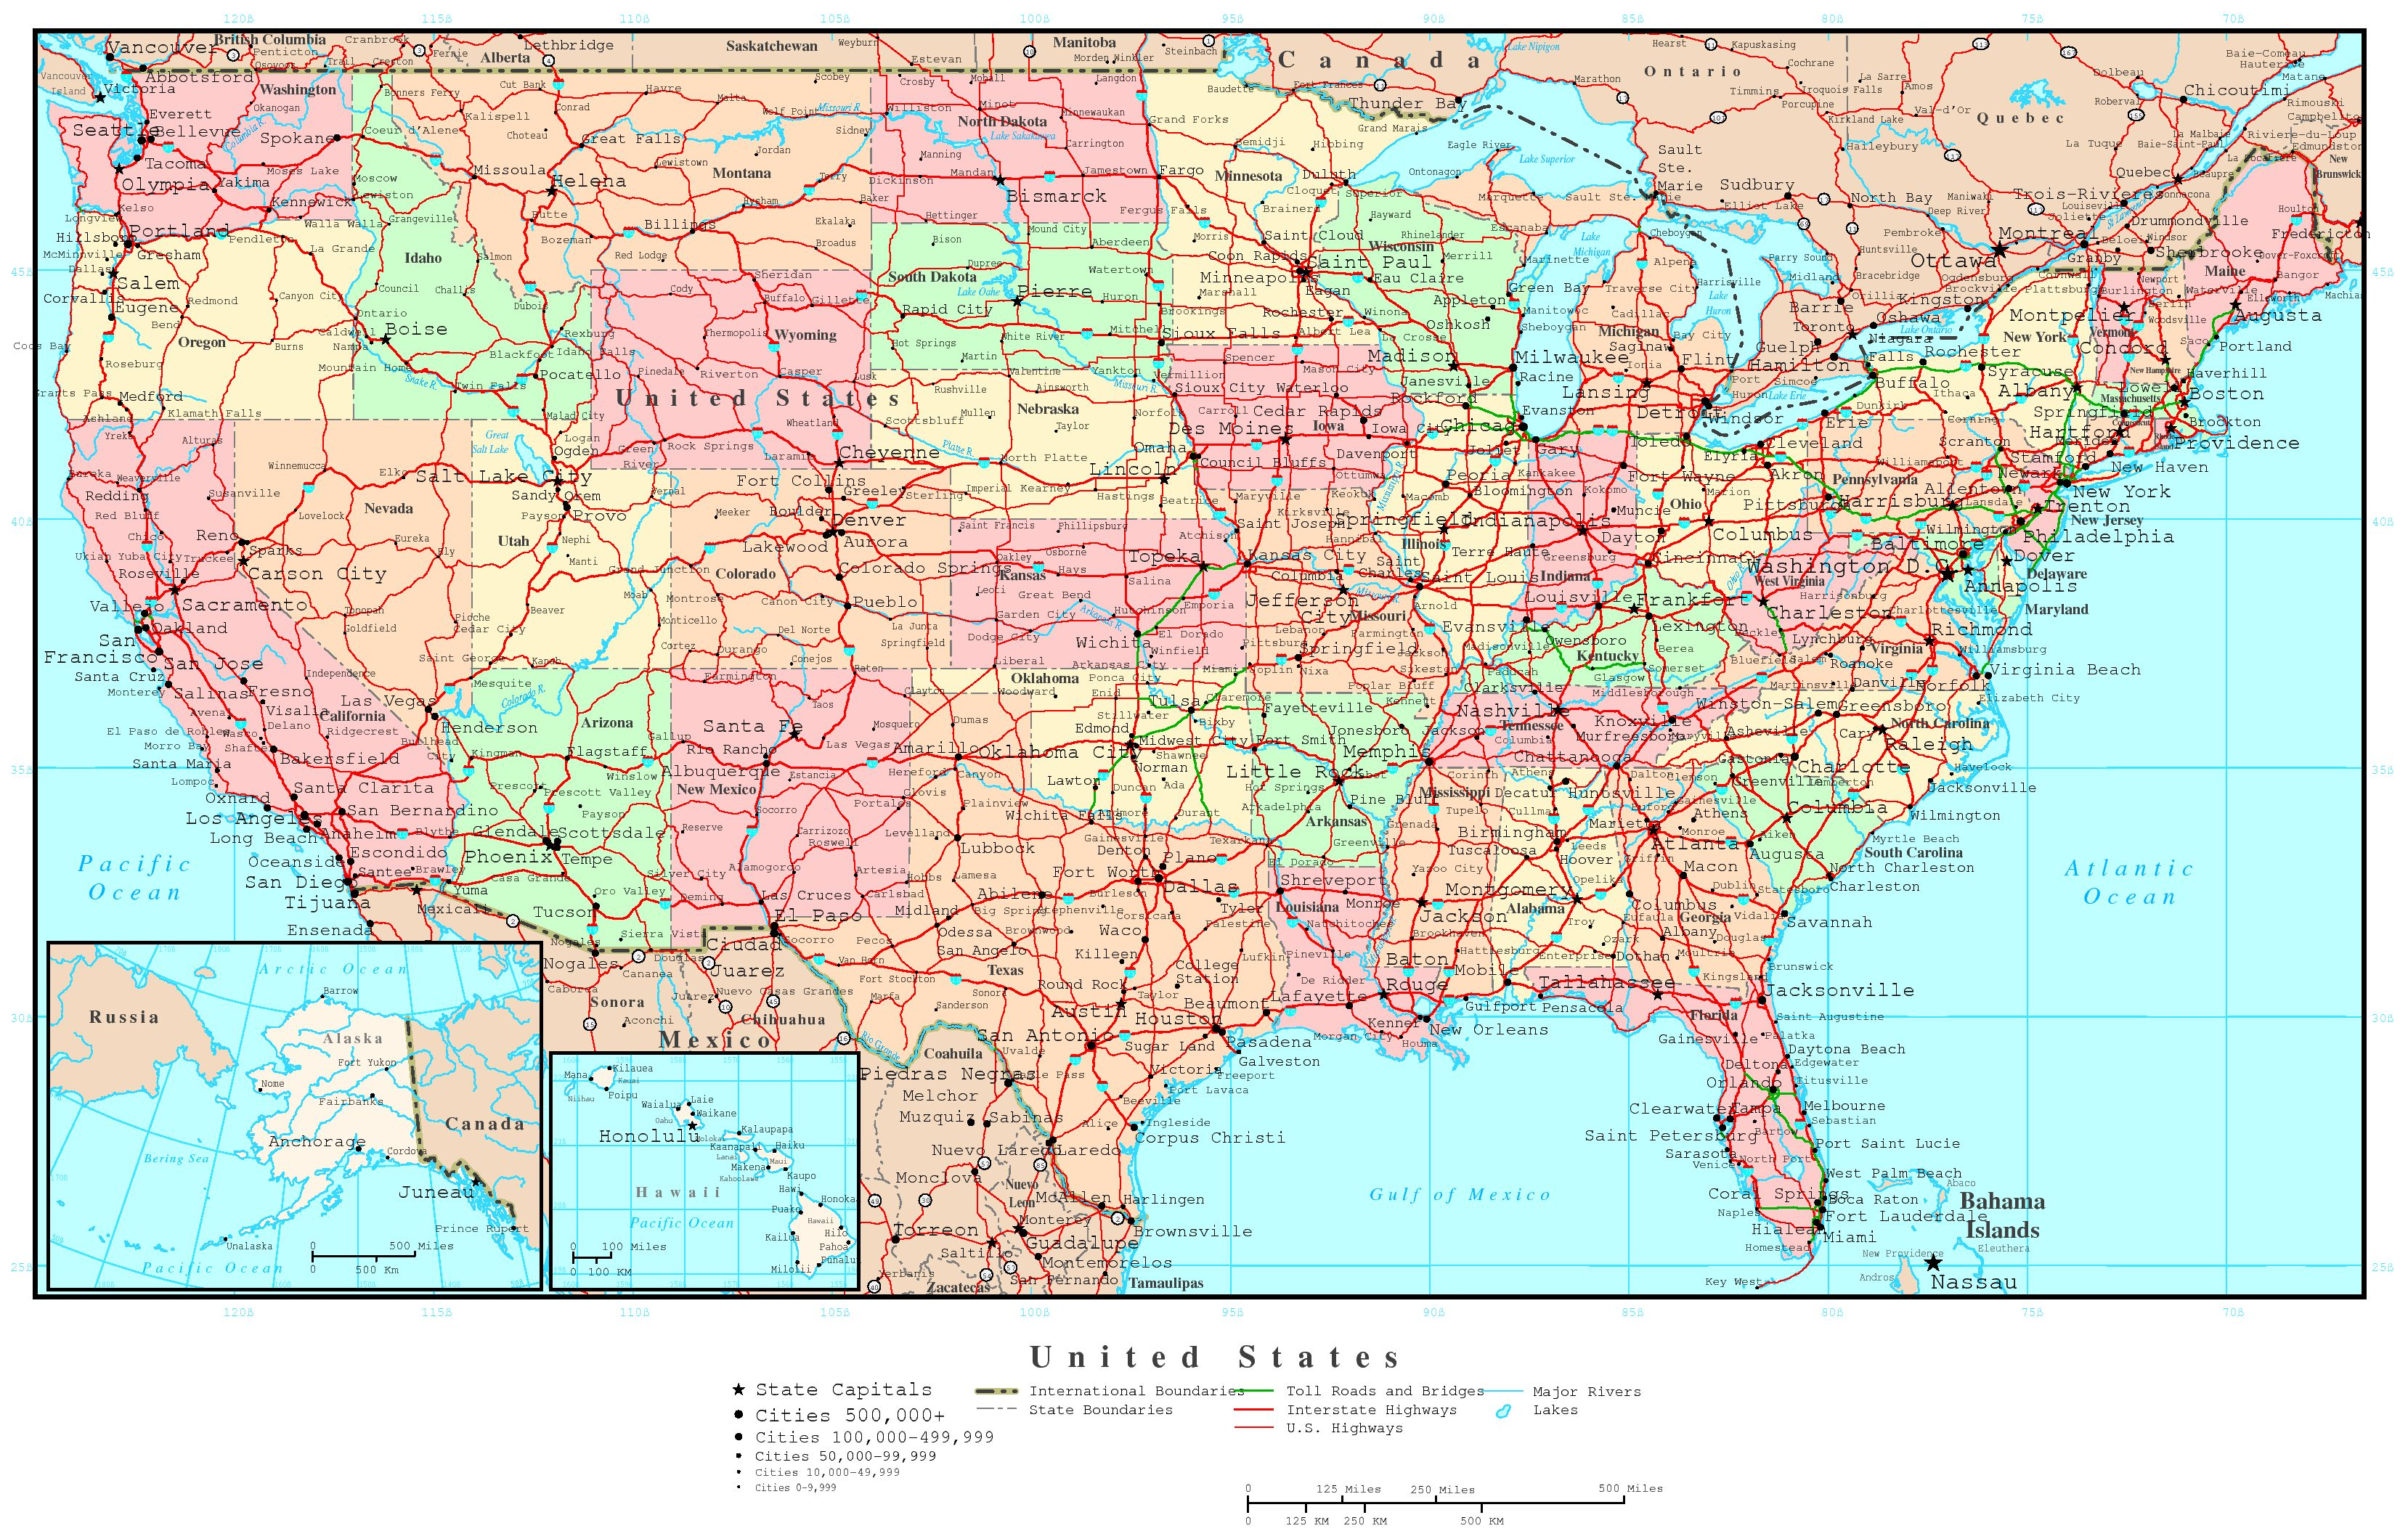 USA Road Map United States Interstate Highway Map United States - Us interstate map states